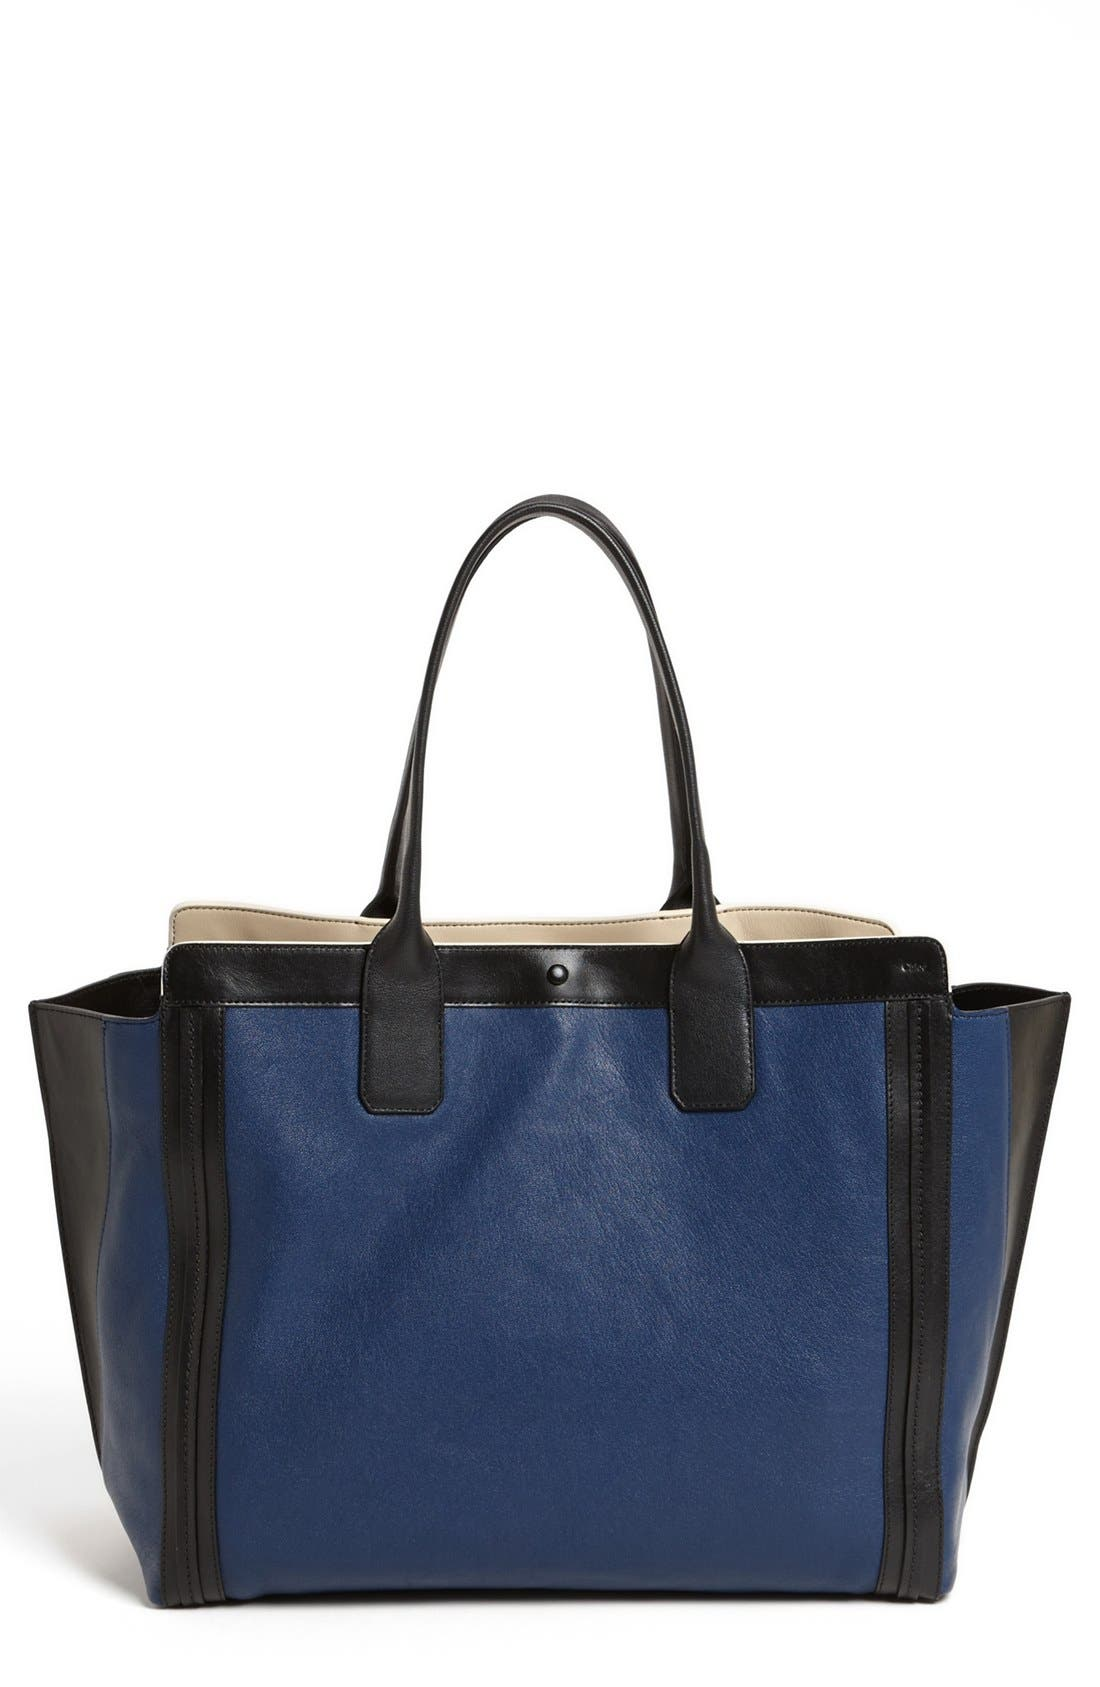 Main Image - Chloé 'Alison' Leather Tote